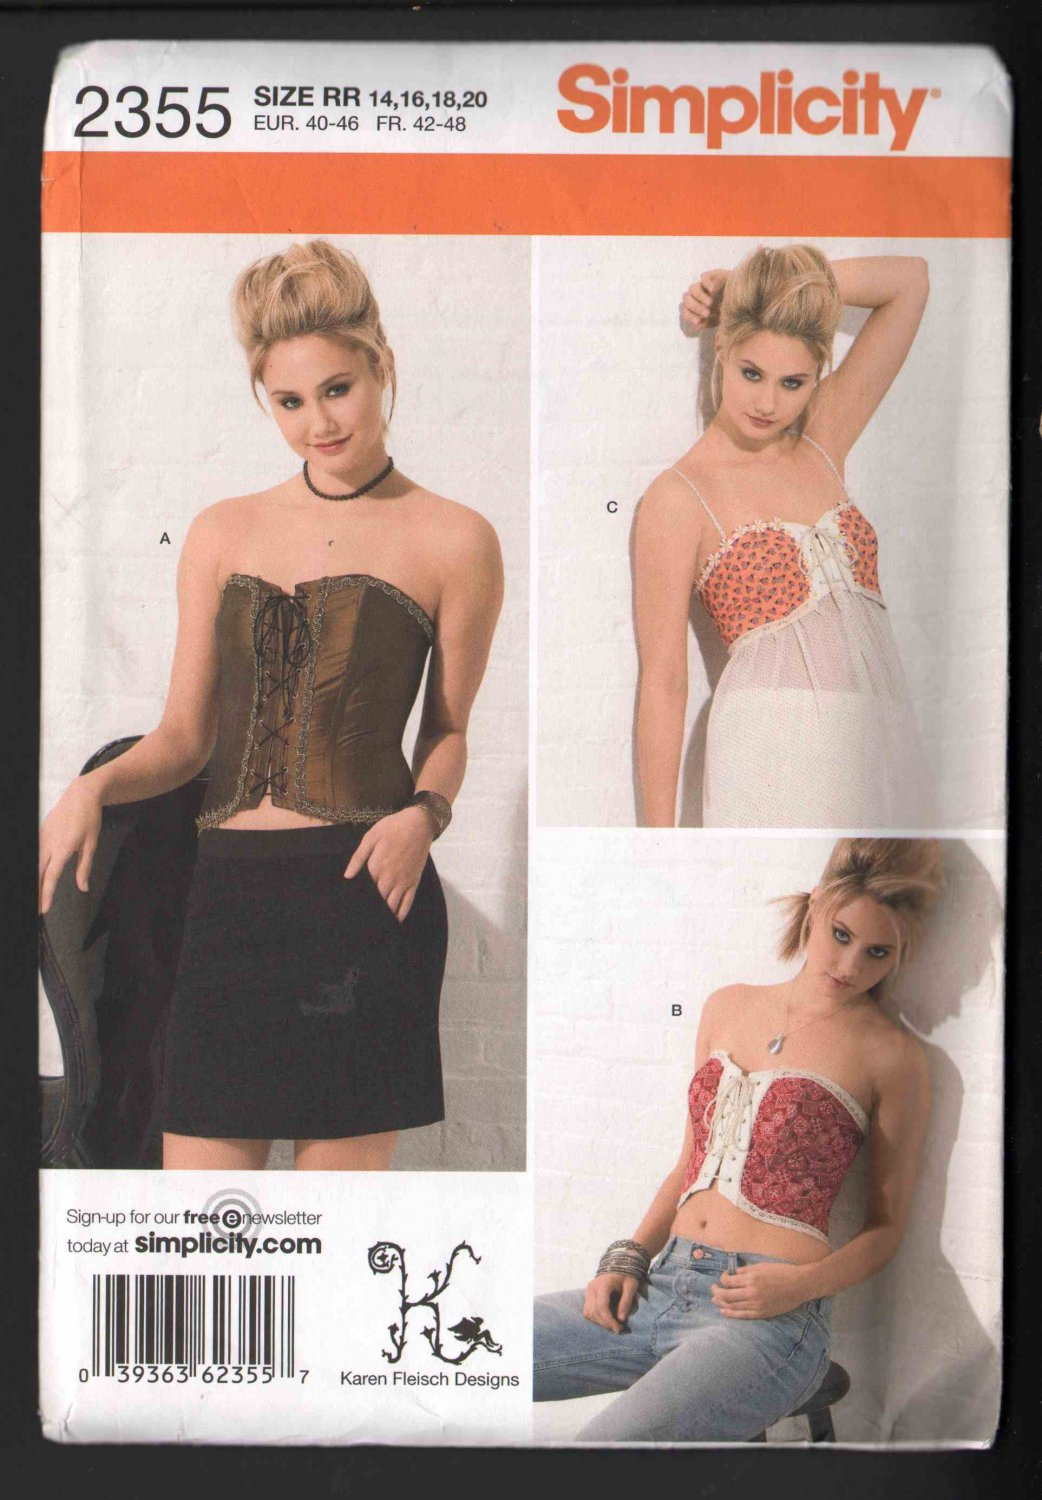 FF OOP Simplicity 2355 Karen Fleisch Designs Misses� Corset Tops w/ Three Design Options Sz 14-20